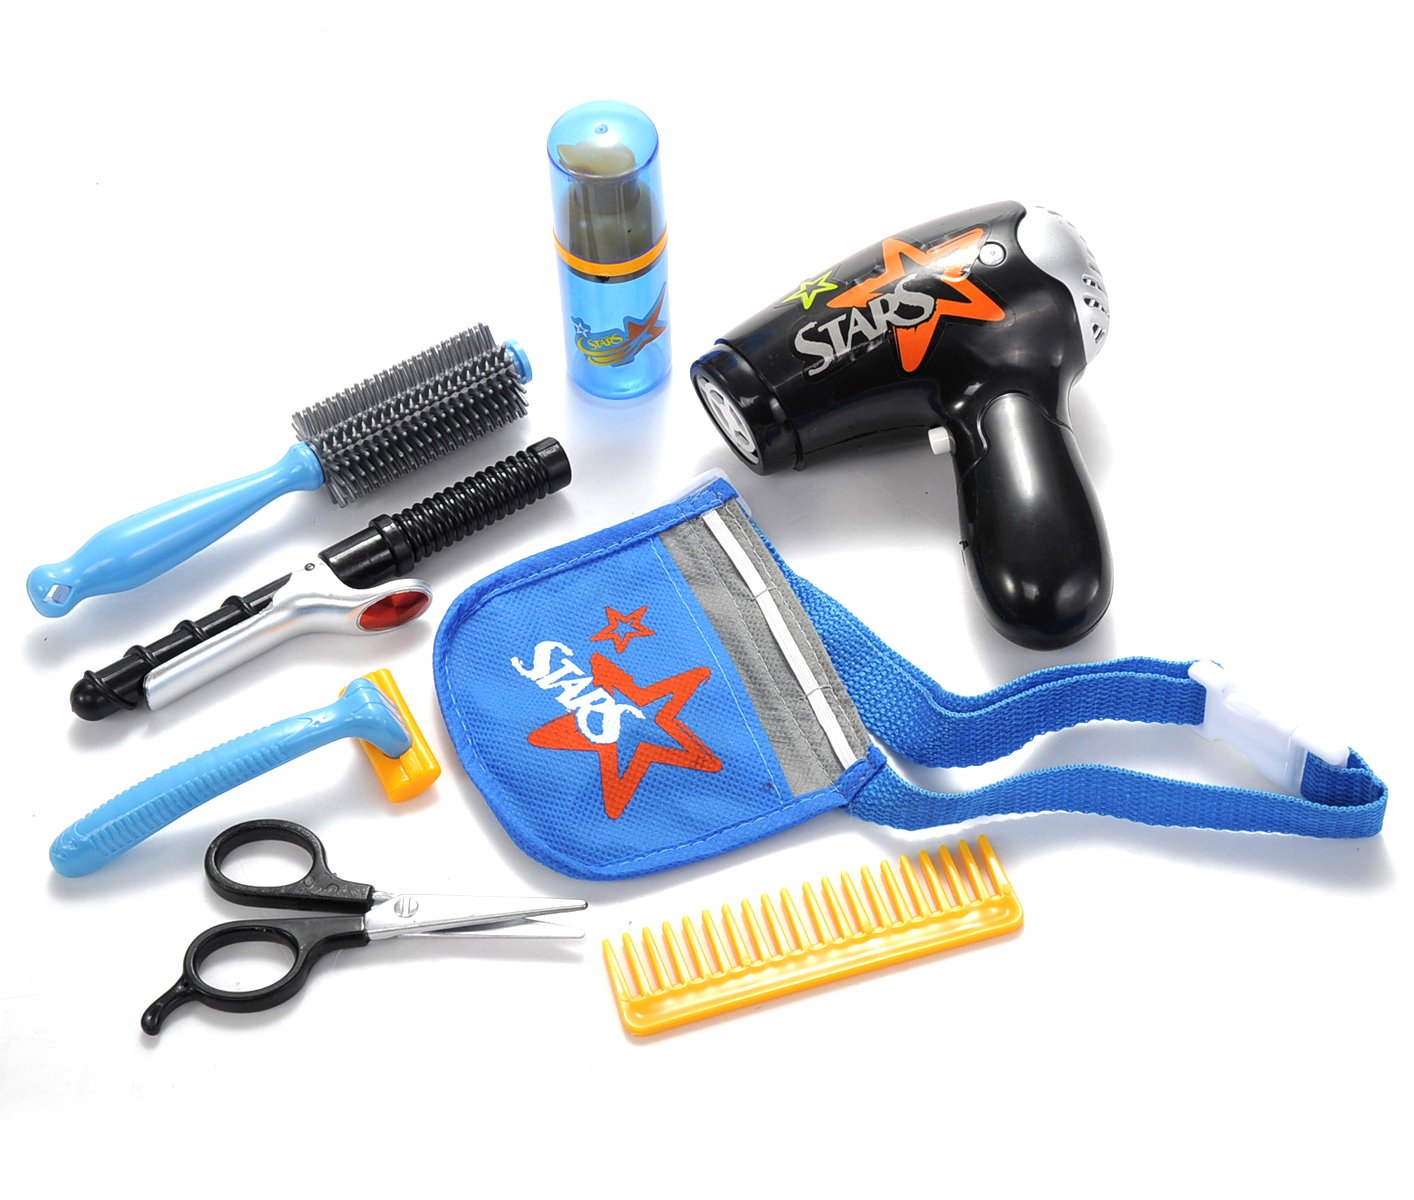 AMPERSAND SHOPS Professional Hair Stylist Barber Shop Salon Toy Set with Hair Dryer Brush Comb Curling Iron Shaver Scissors and Tool Belt Blue by AMPERSAND SHOPS (Image #1)